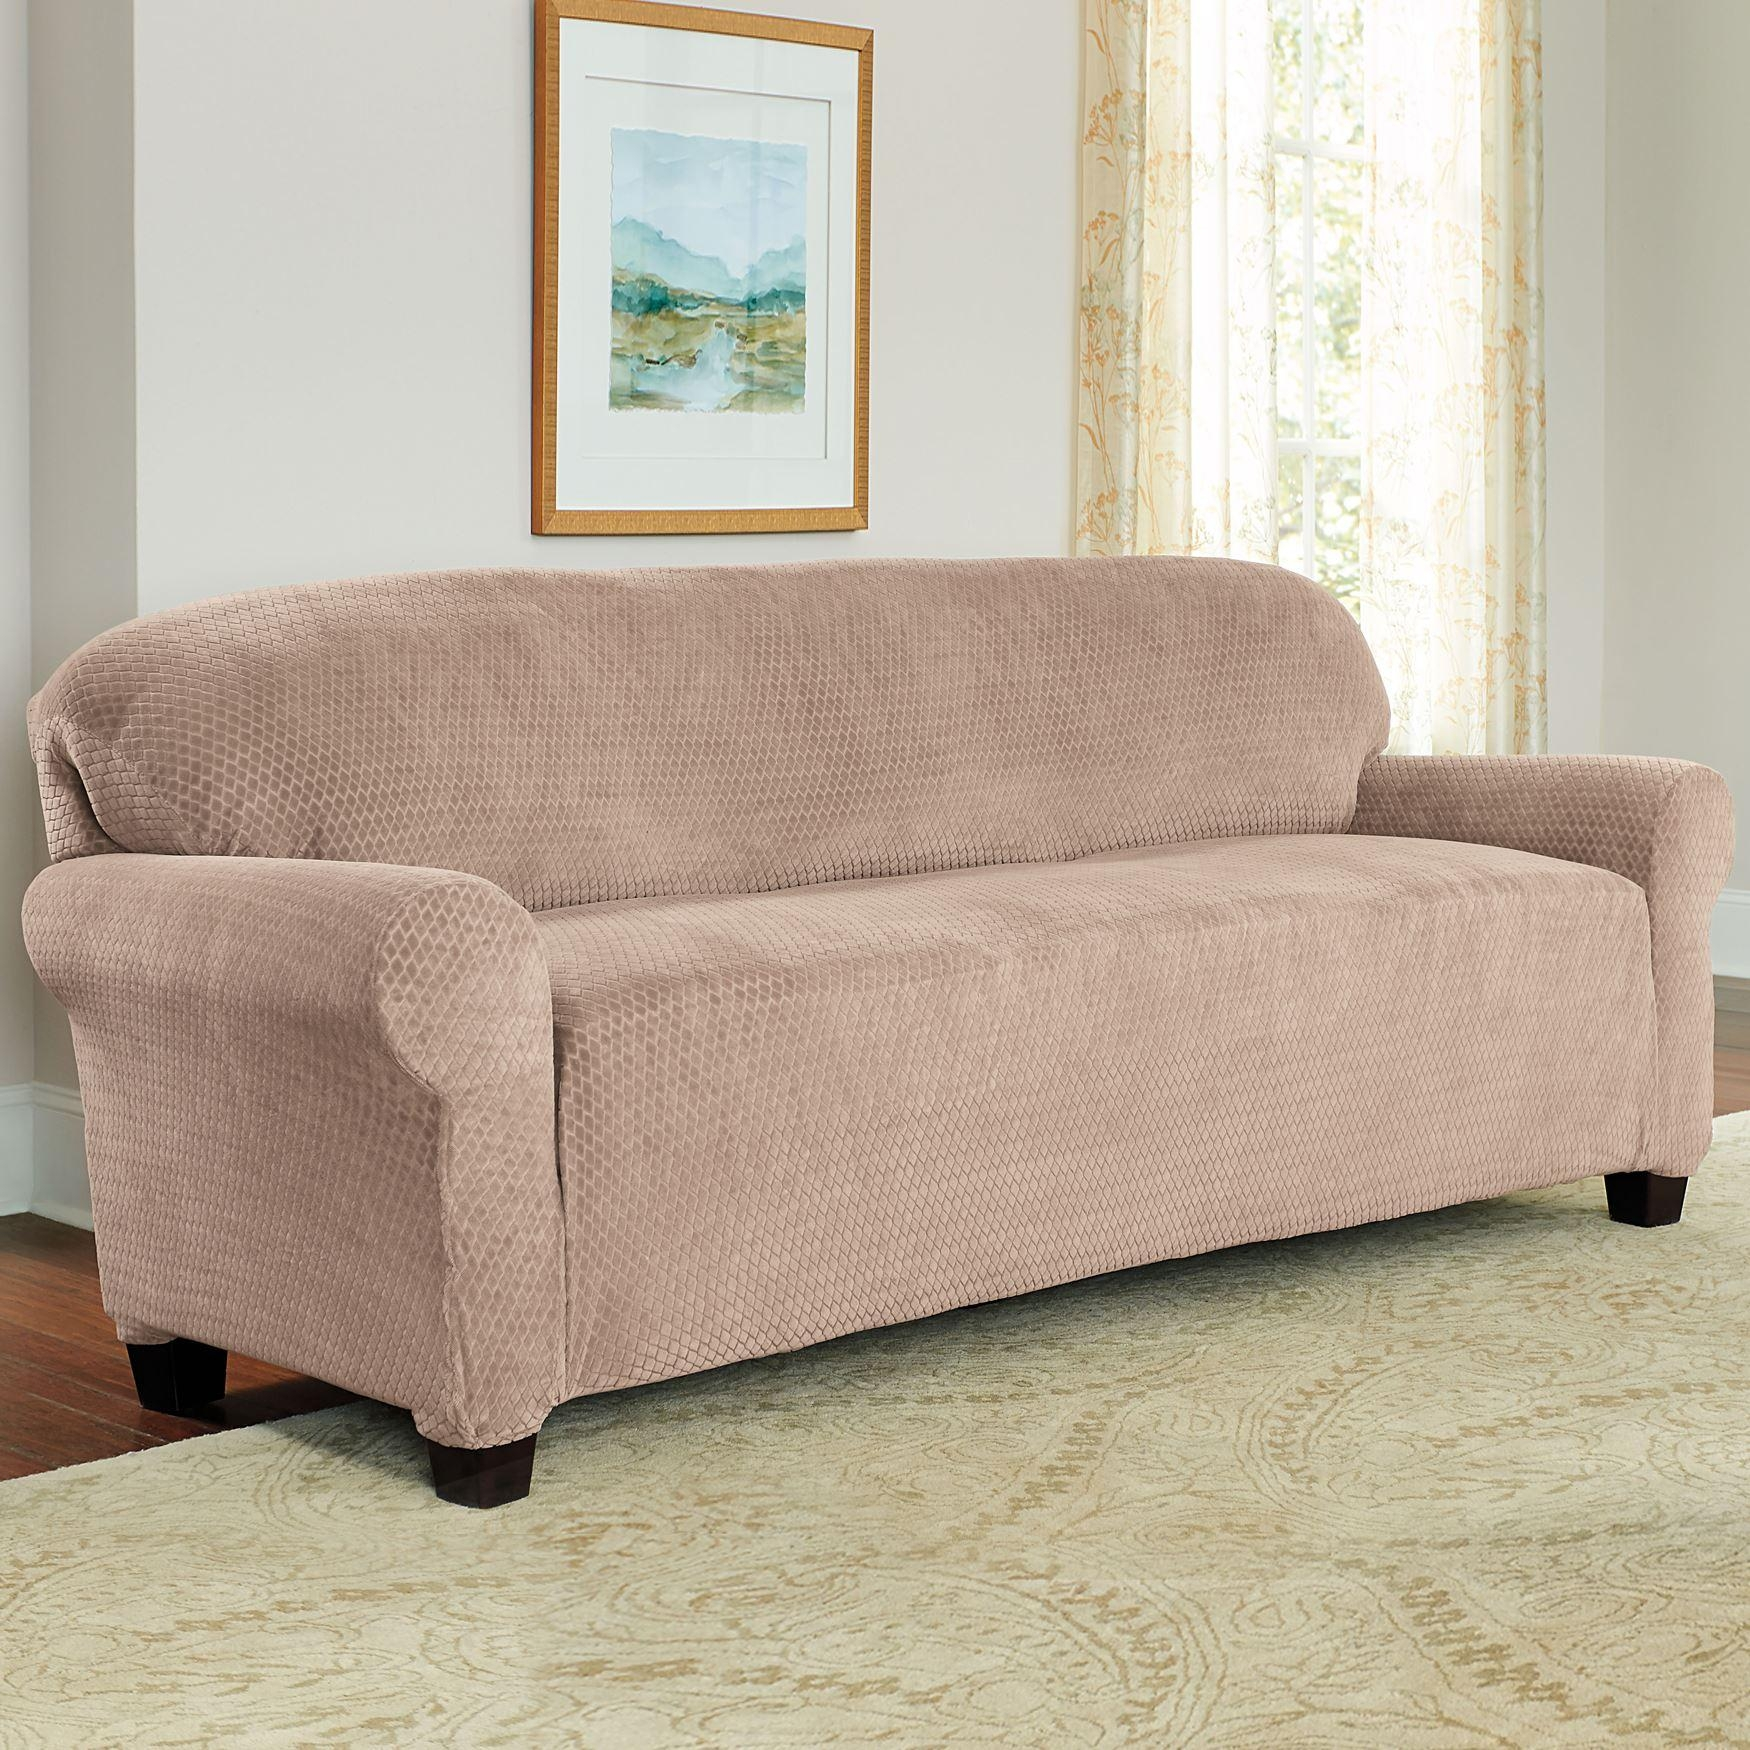 Sofas : Awesome Sofa Protector Couch Arm Covers Sure Fit Sofa With Large Sofa Slipcovers (View 6 of 23)